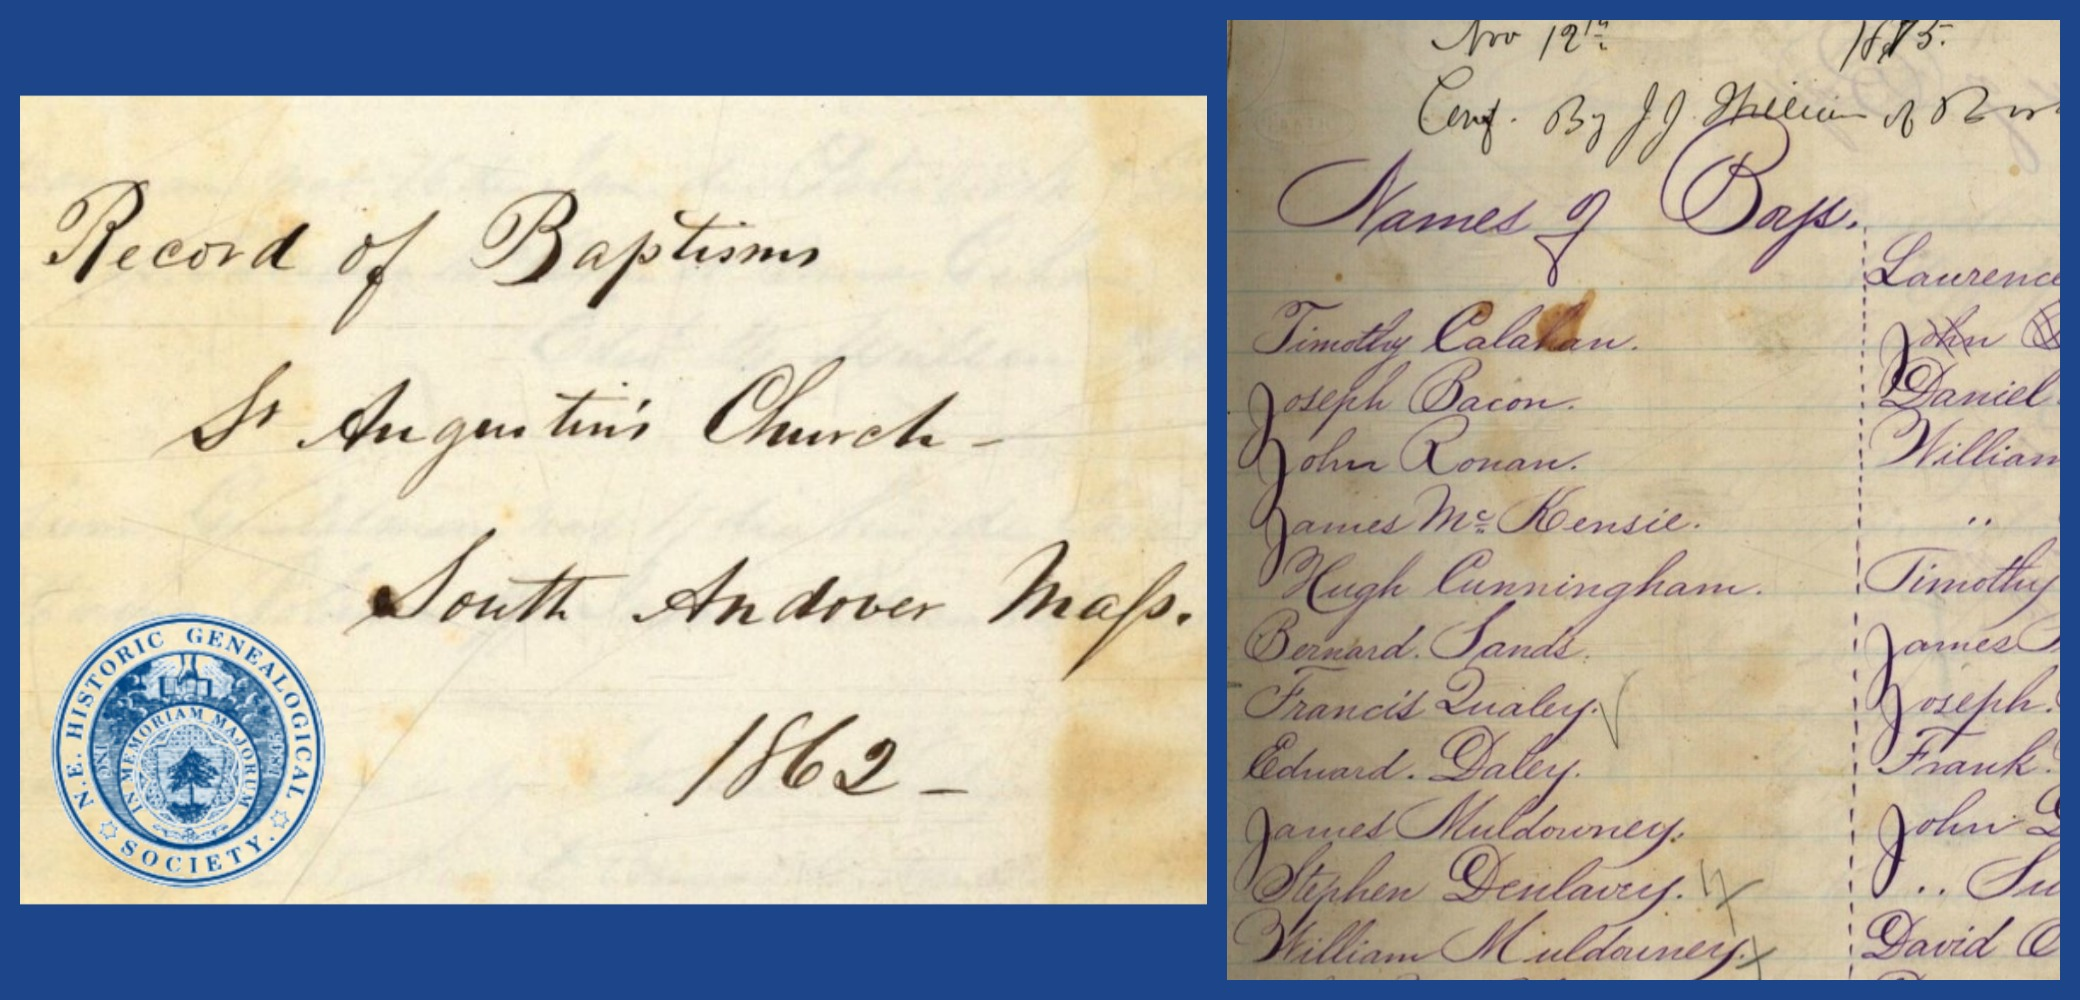 Archdiocese of Boston Roman Catholic Records from New England Historic Genealogical Society